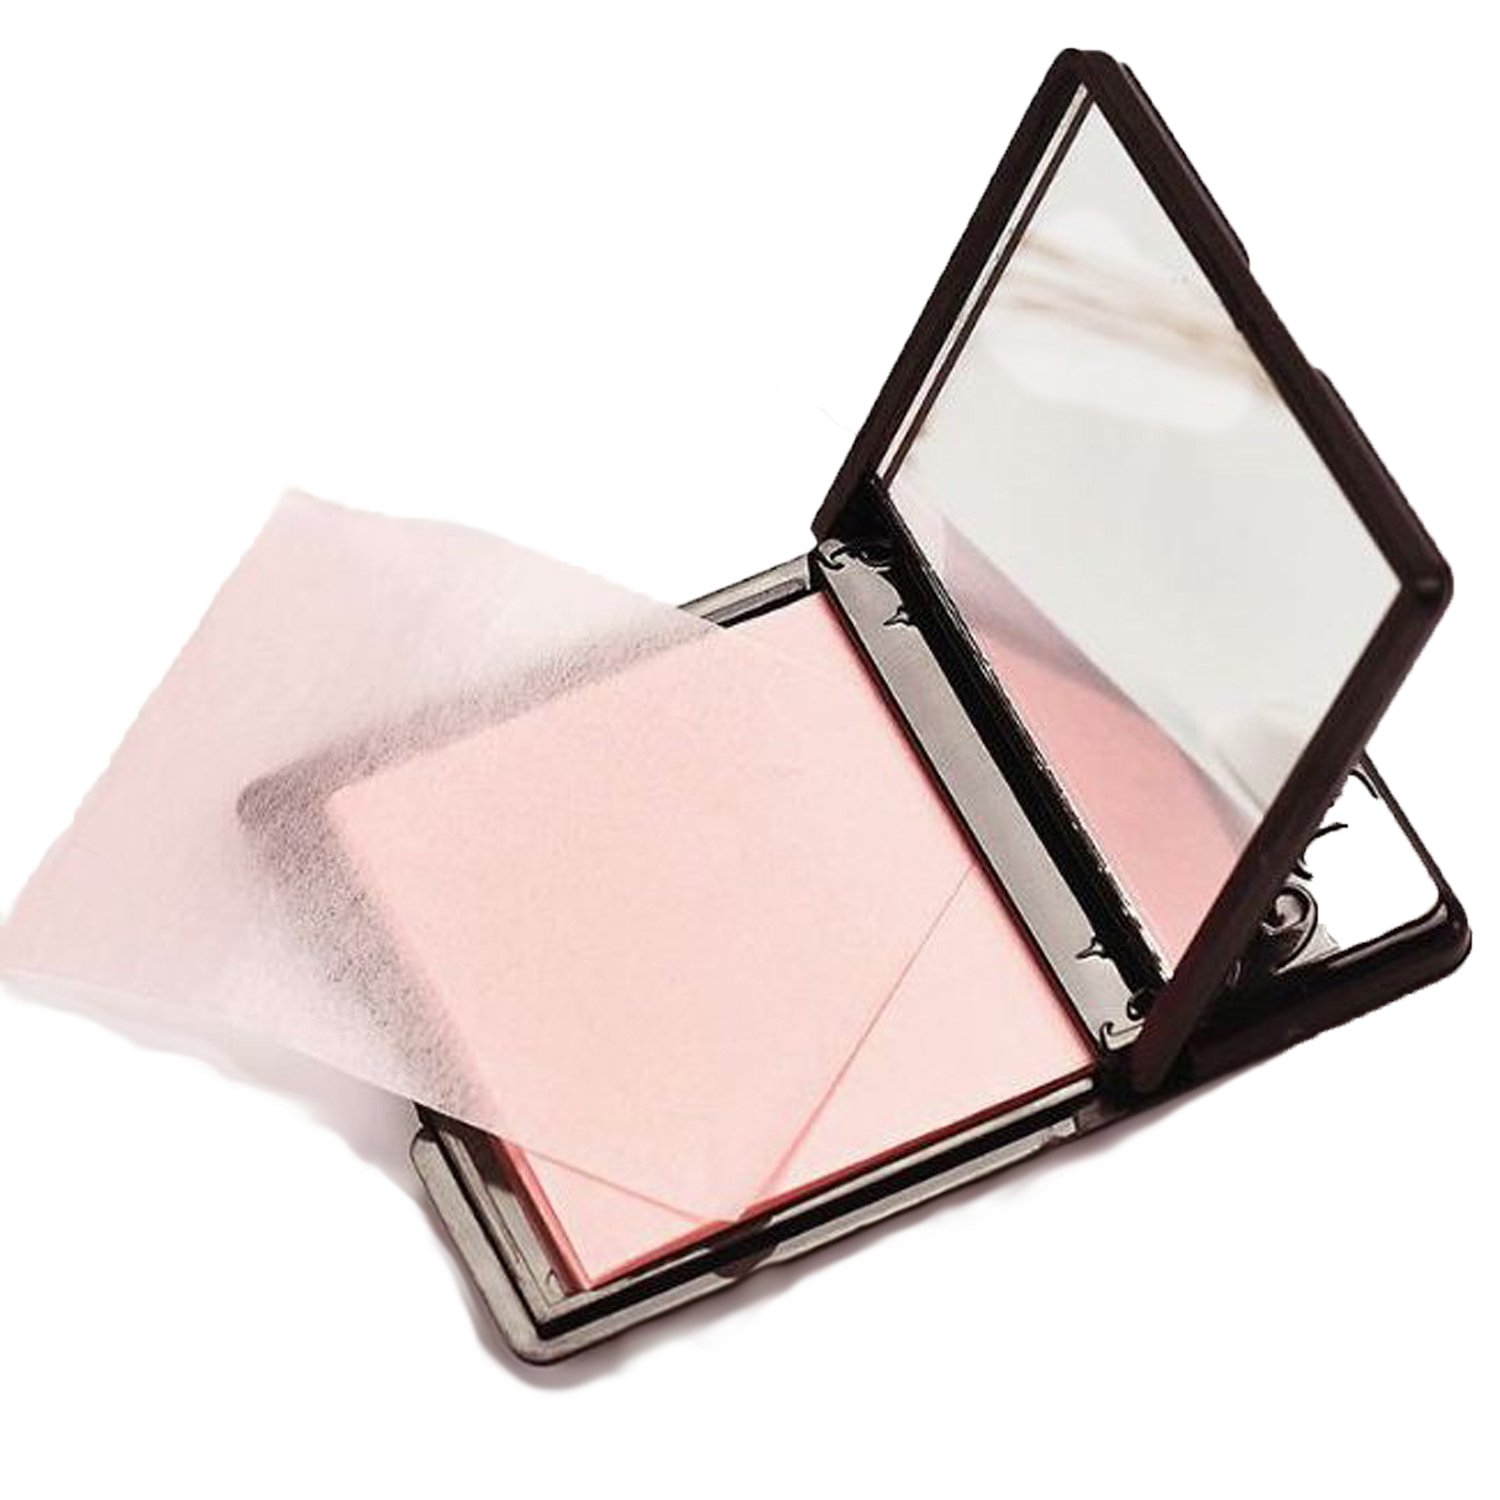 Blotting Paper Beauty Control Oil Absorbing Tissues Face Facial Make Up Sheets Pink Colour 50 pcs with Mirror Black Plastic Cover Chocokyka